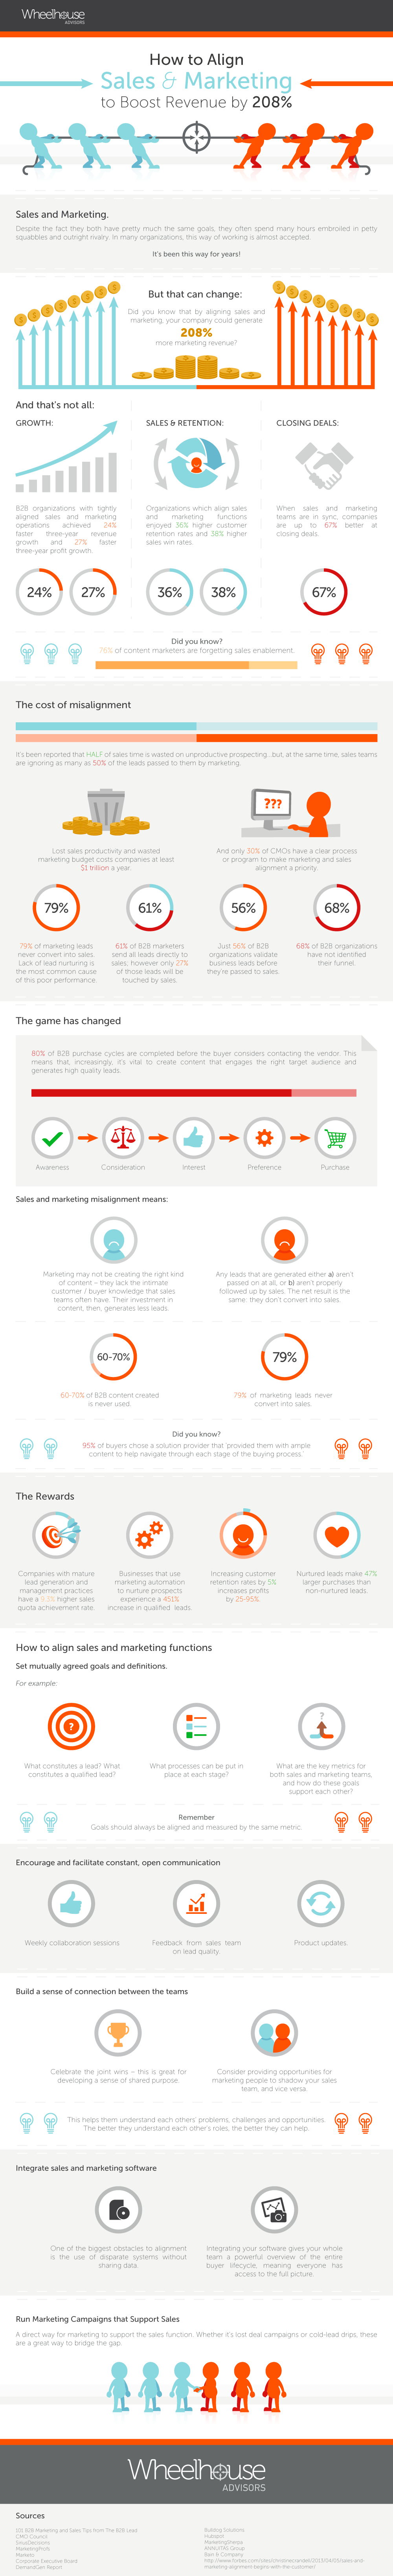 sales and marketing alignment infographic